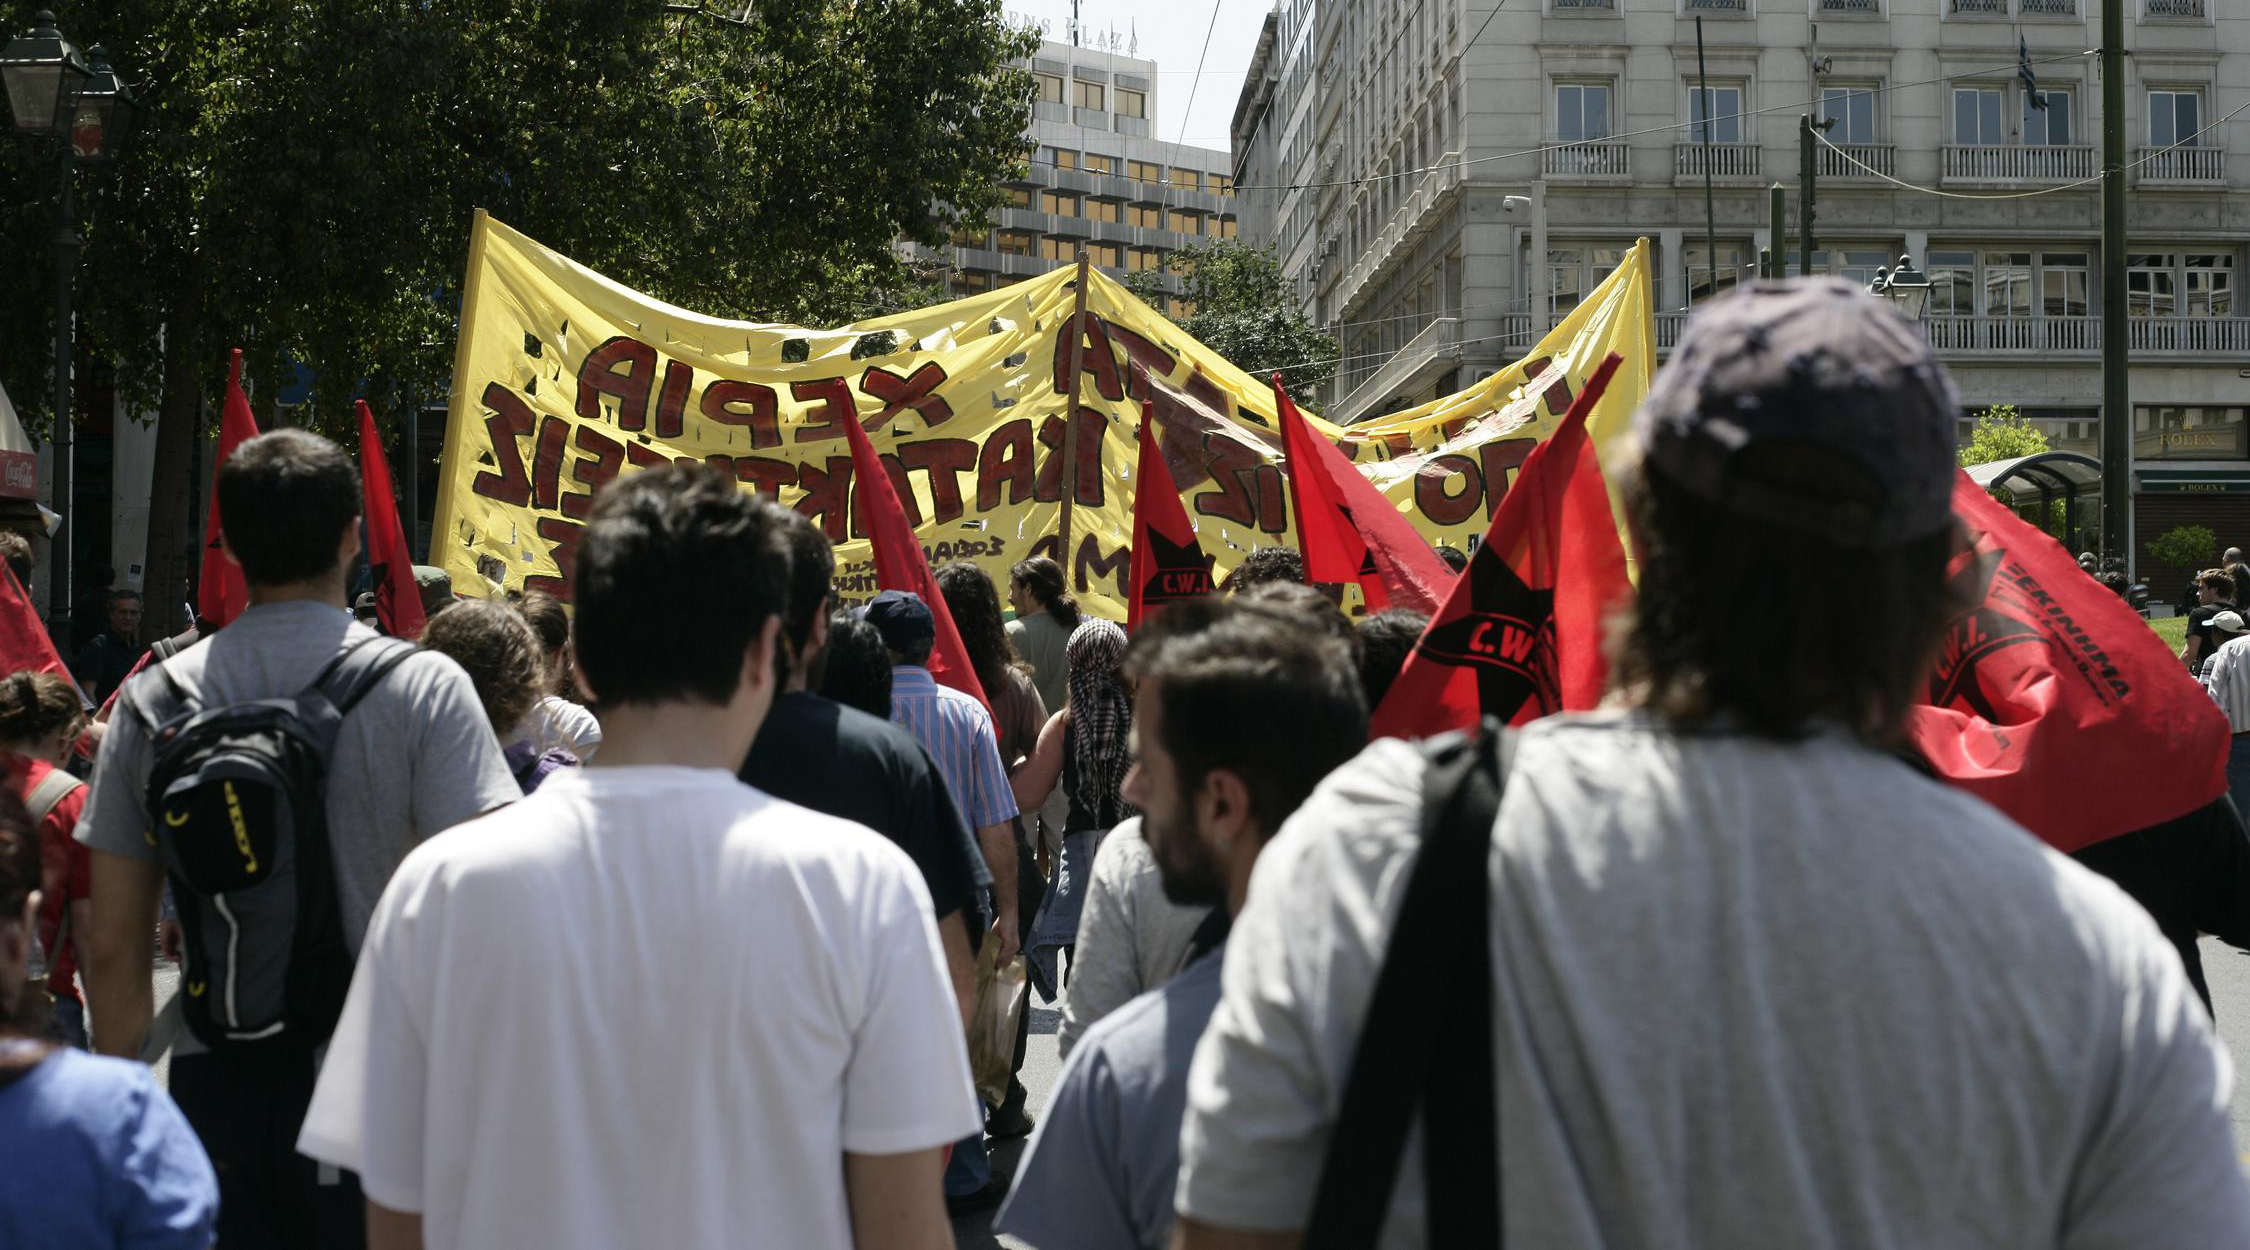 The  1st of May was celebrated in Athens with a demonstration organized by many syndicates and organizations / Πορεία για τον εορτασμό της πρωτομαγιάς που διοργάνωσαν φορείς και συνδικάτα